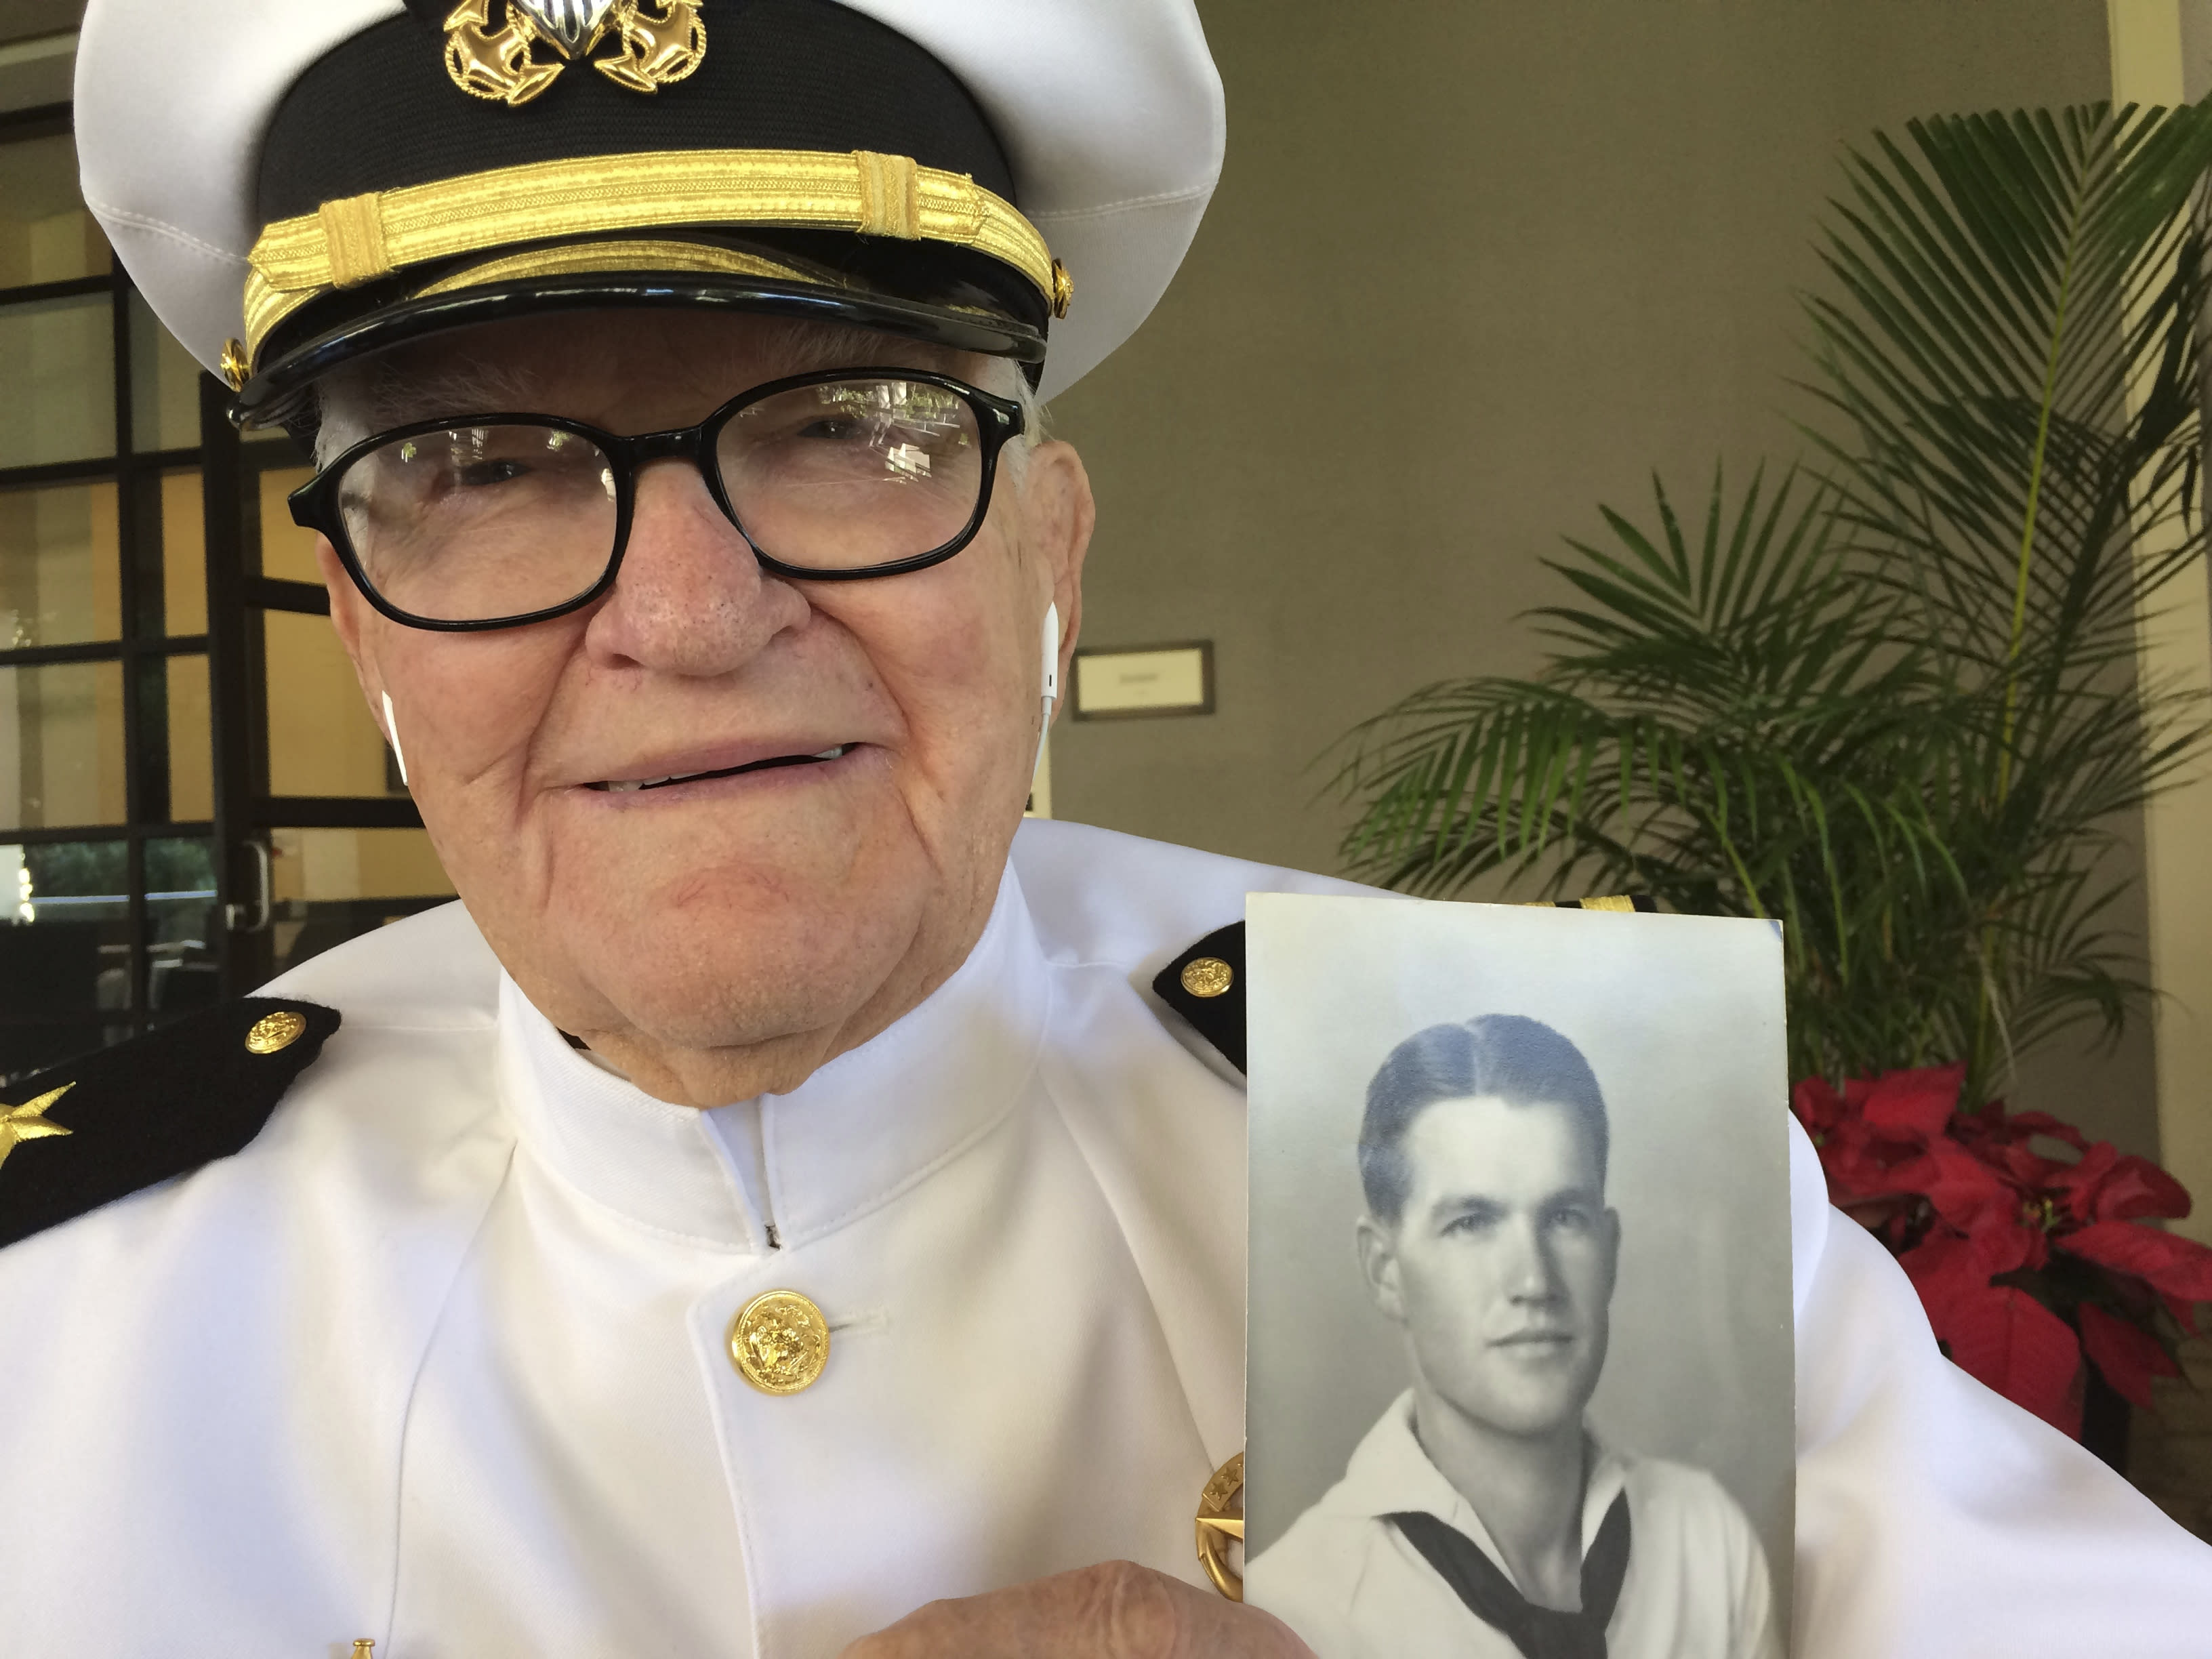 Crowd honors 'gift of freedom' from Pearl Harbor servicemen